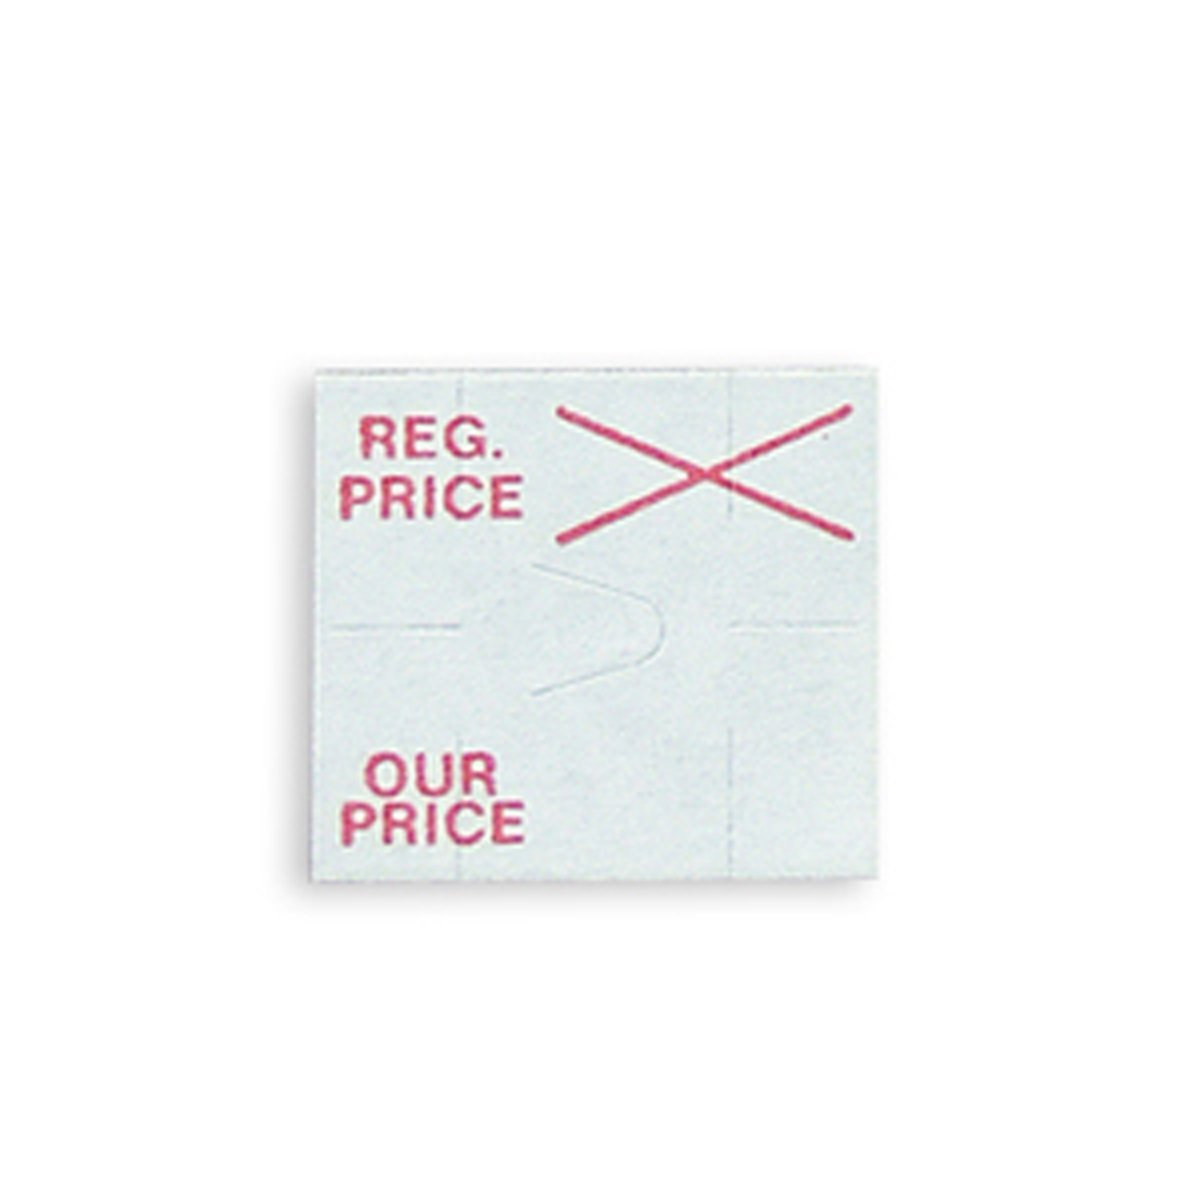 Labels for Dennison 216 Label Gun Regular Price/Our Price Label Retail Store Fixture New